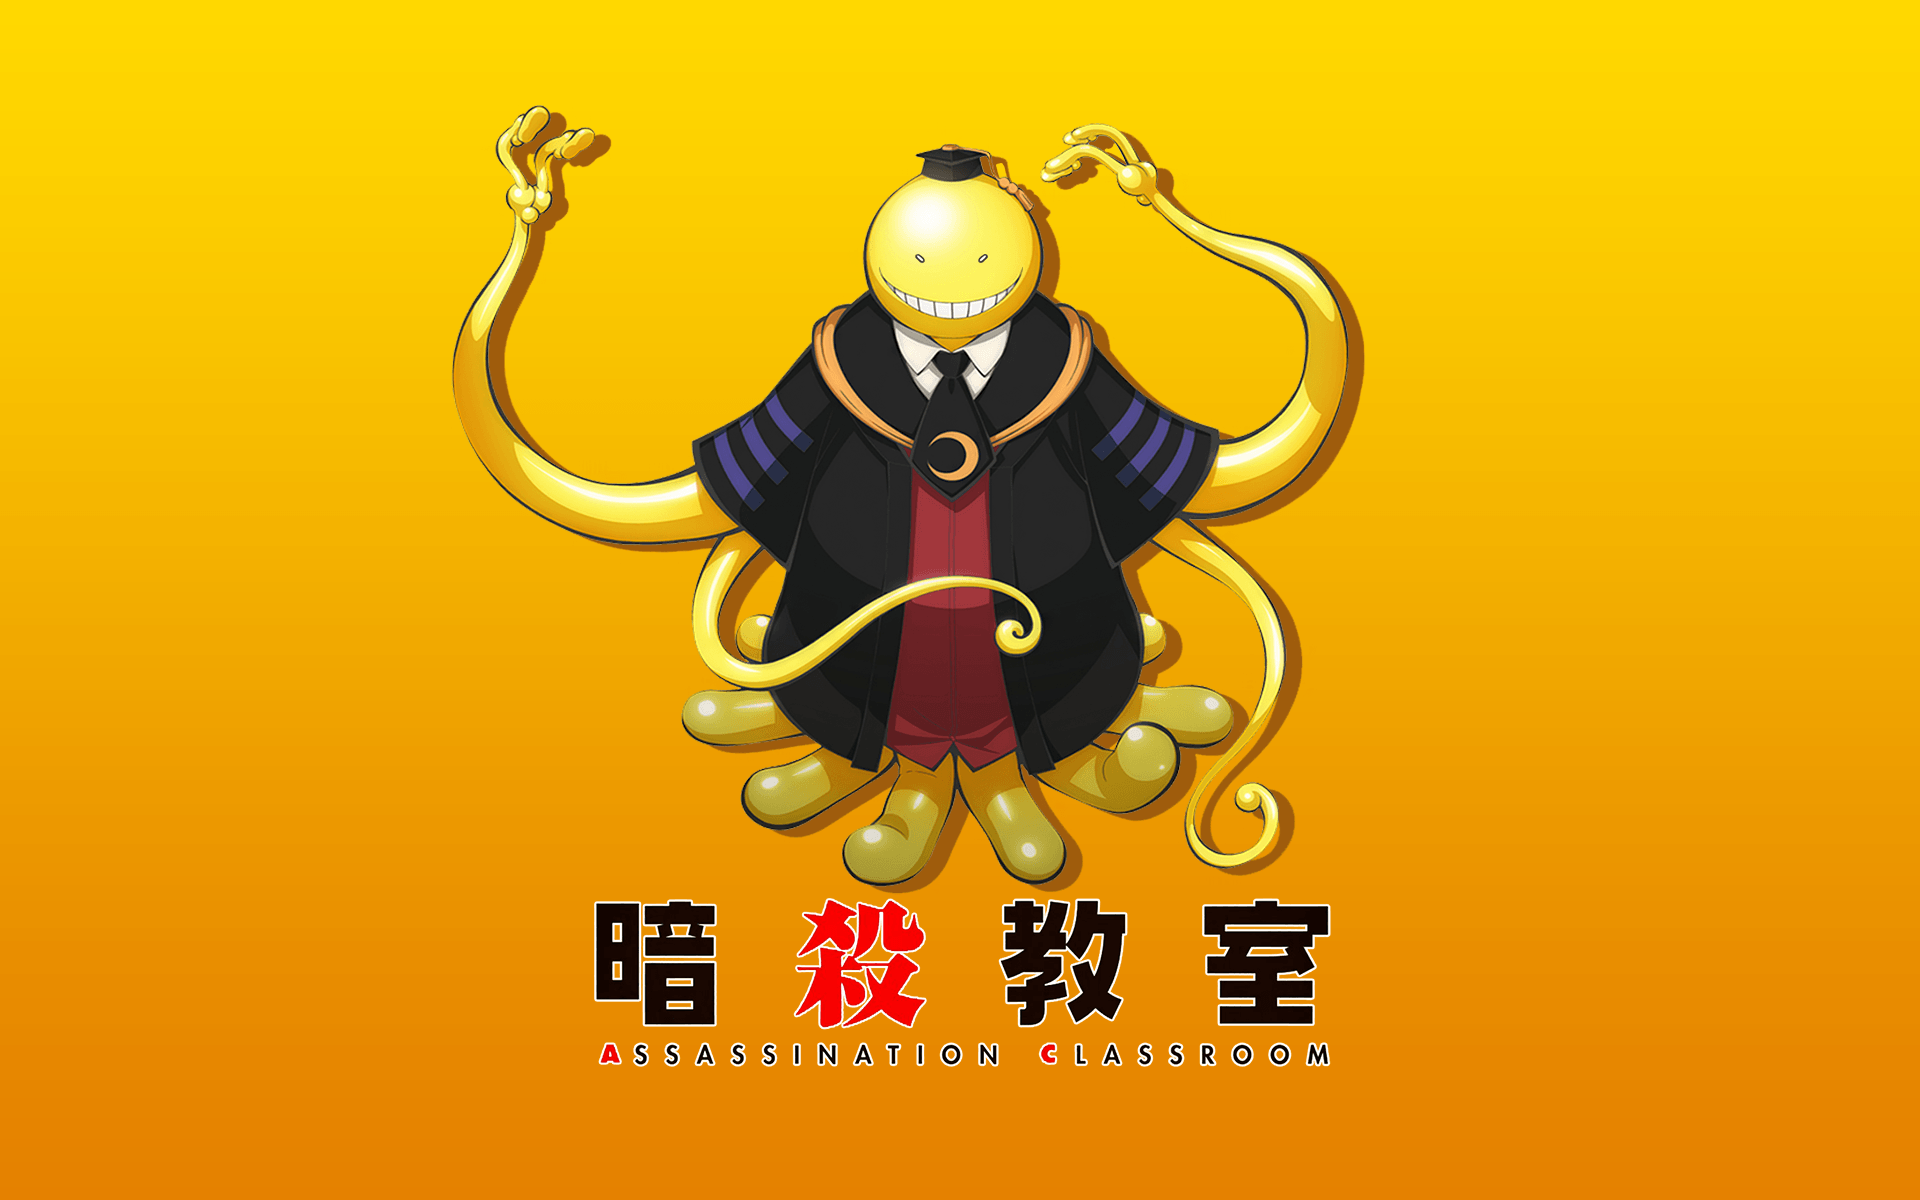 Assassination Classroom Computer Wallpapers, Desktop Backgrounds